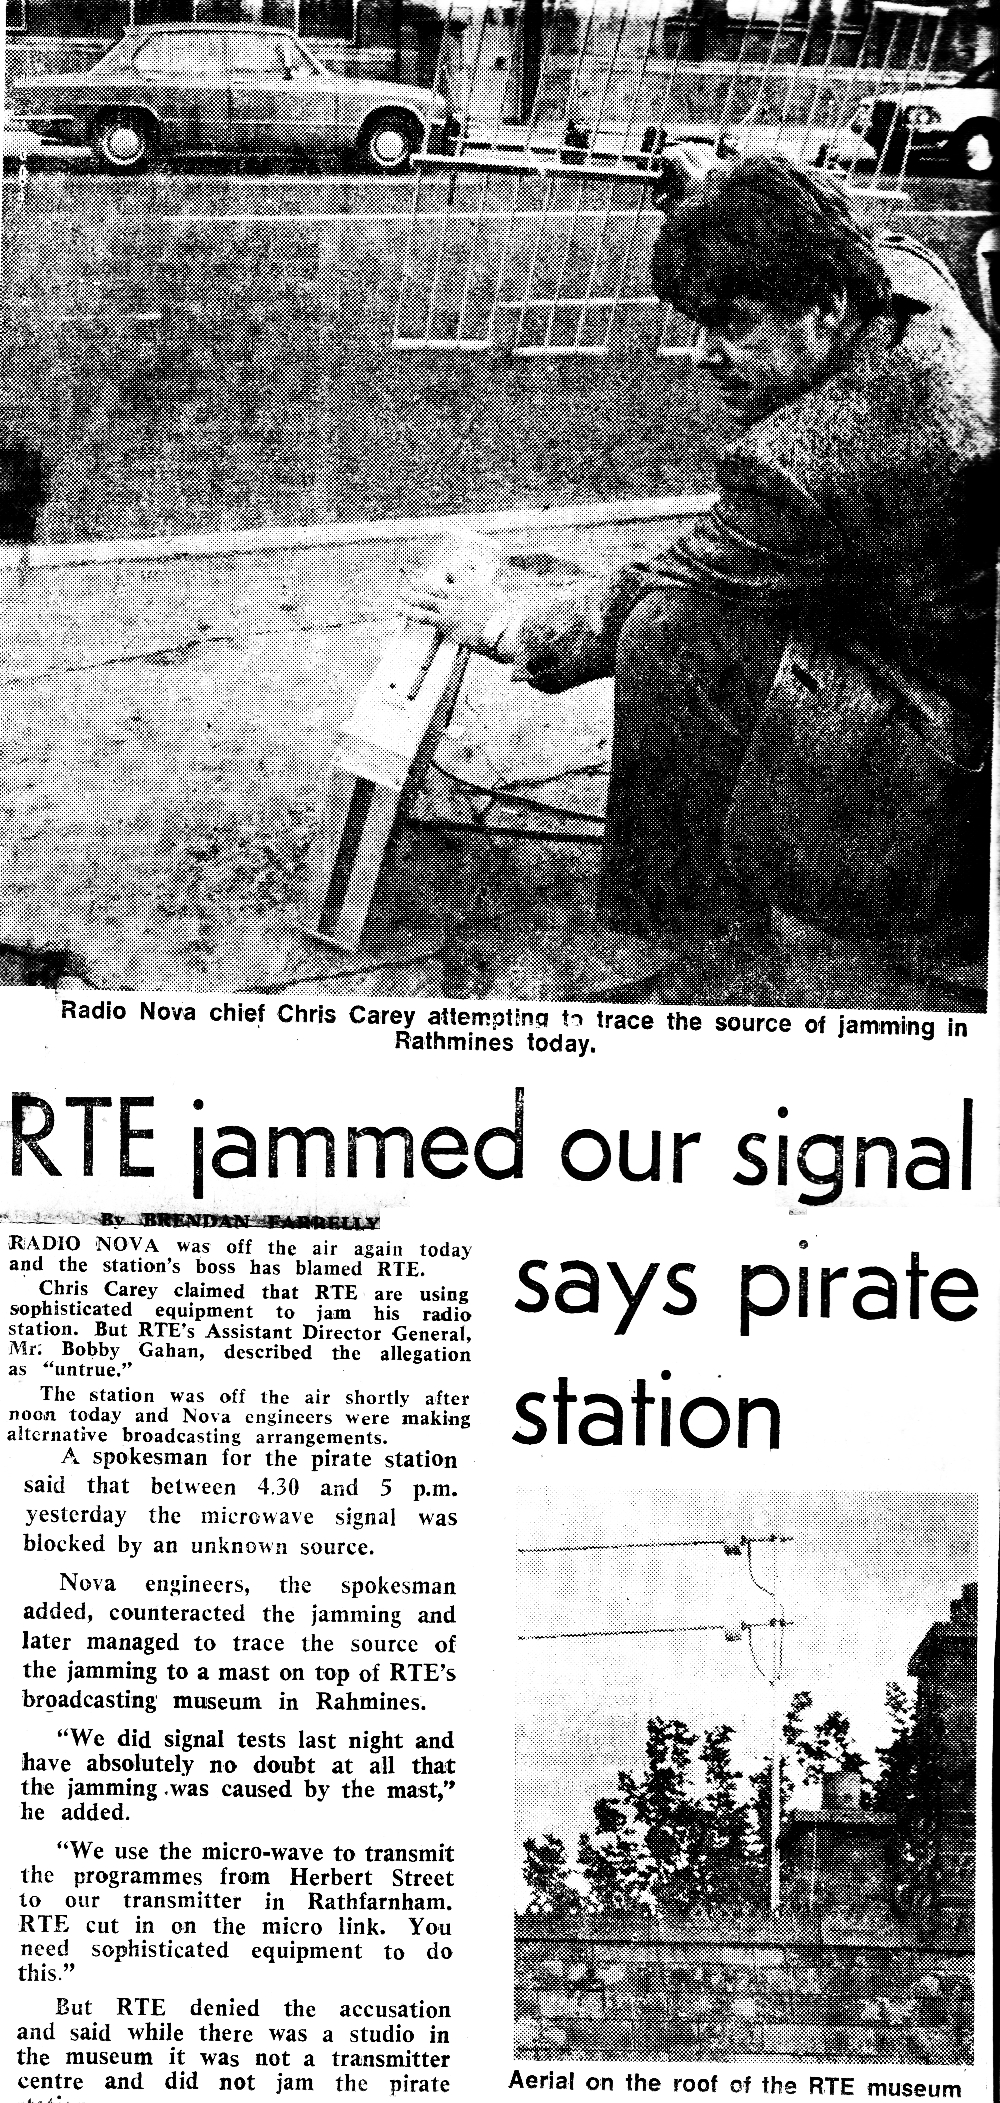 Radio Nova celebrates one year on air with a birthday surprise from RTÉ. From June 29th 1982, this is a recording of the Dublin station as they were forced to use an alternative to their main microwave link from Herbert St. The main link was under attack from signals emanating from an RTÉ-owned building in Rathmines. The jamming had started the day before but lasted just 30 minutes.